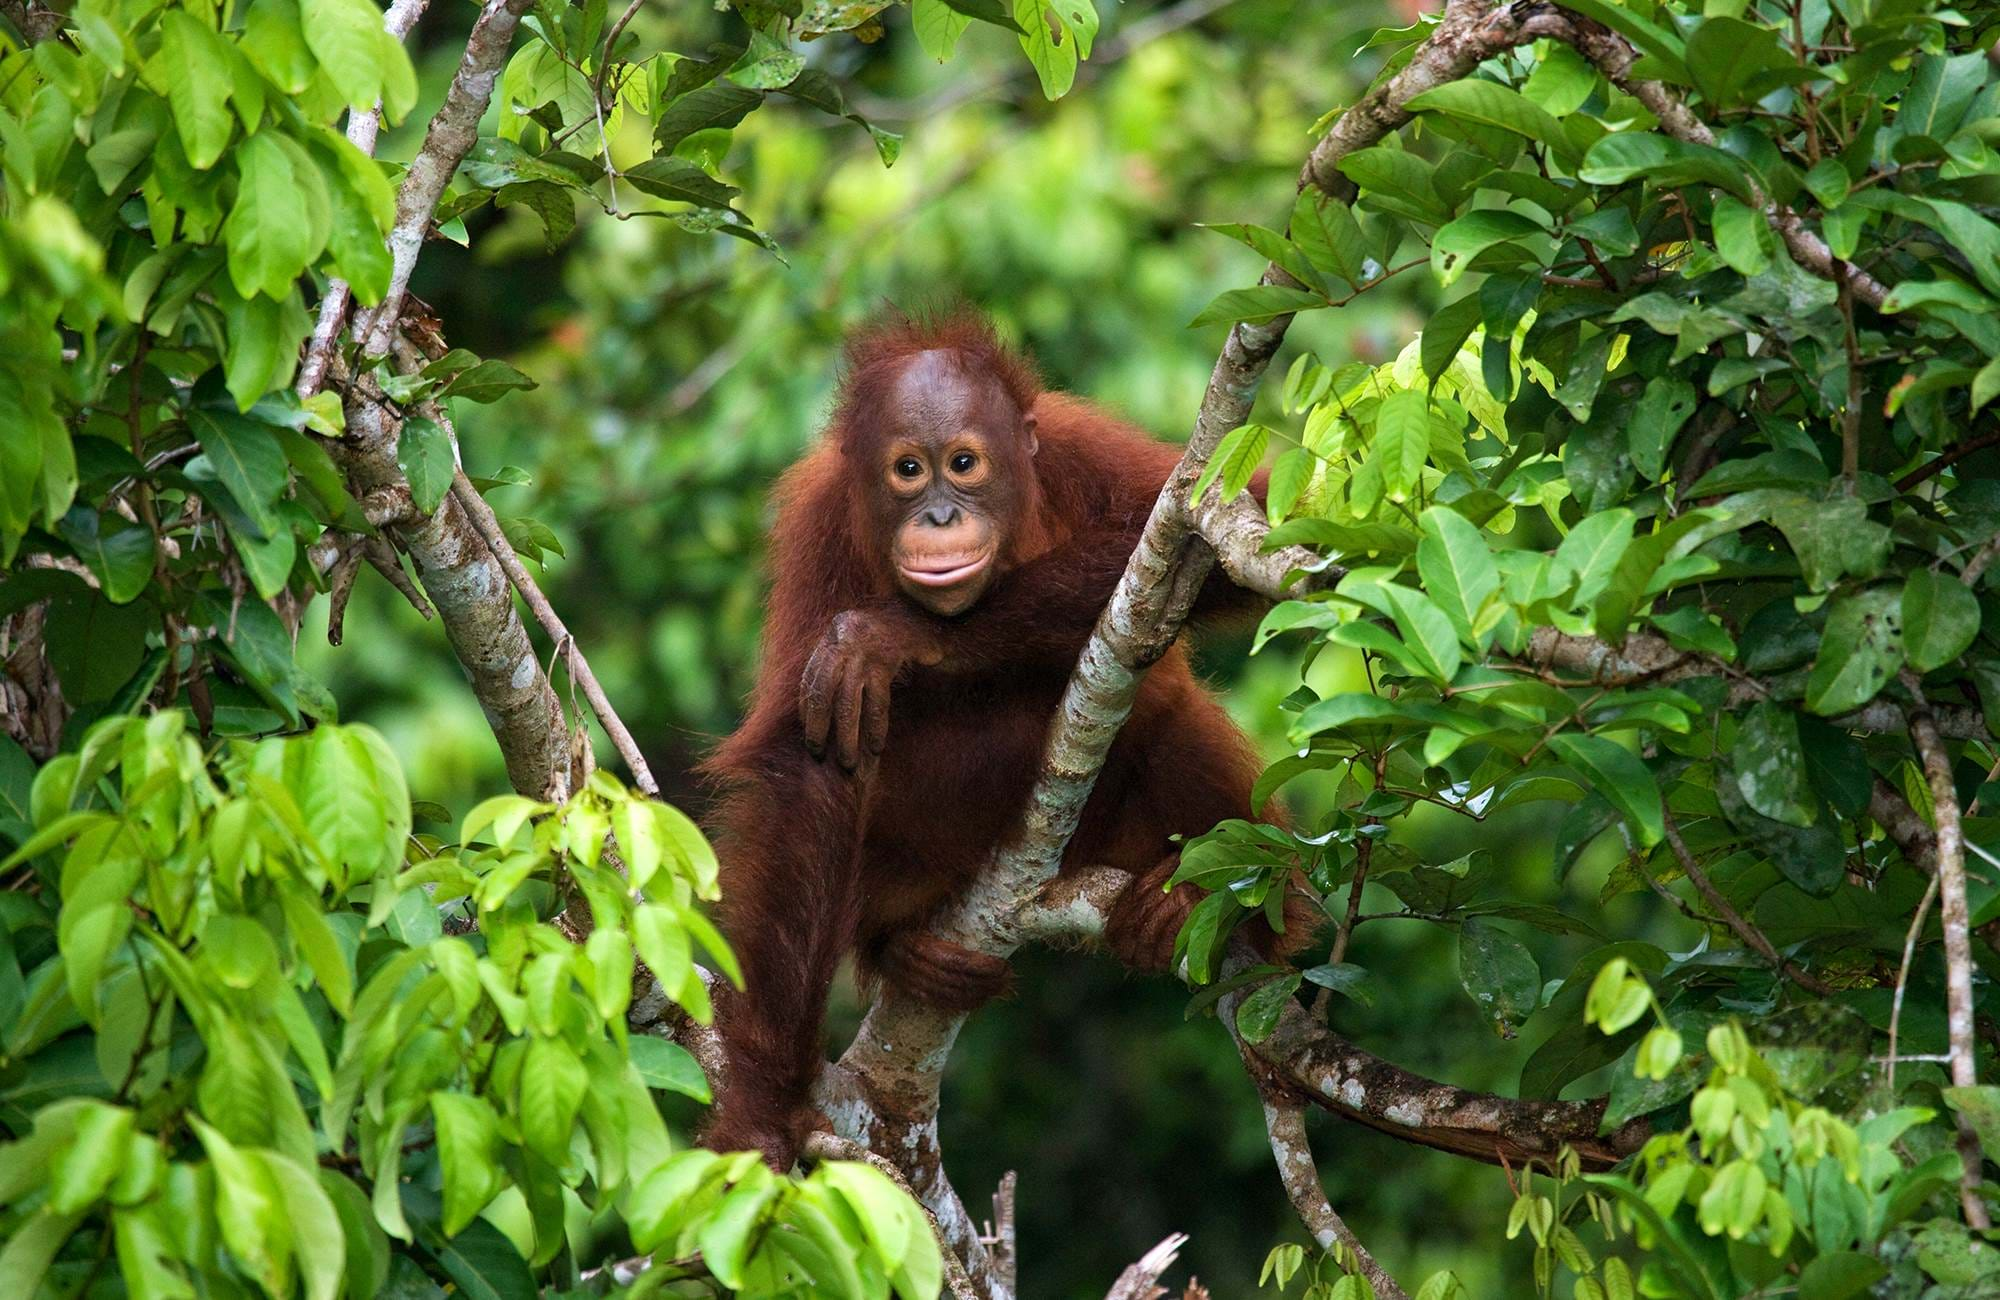 borneo-baby-orangutan-in-the-wild-the-island-of-kalimantan-cover